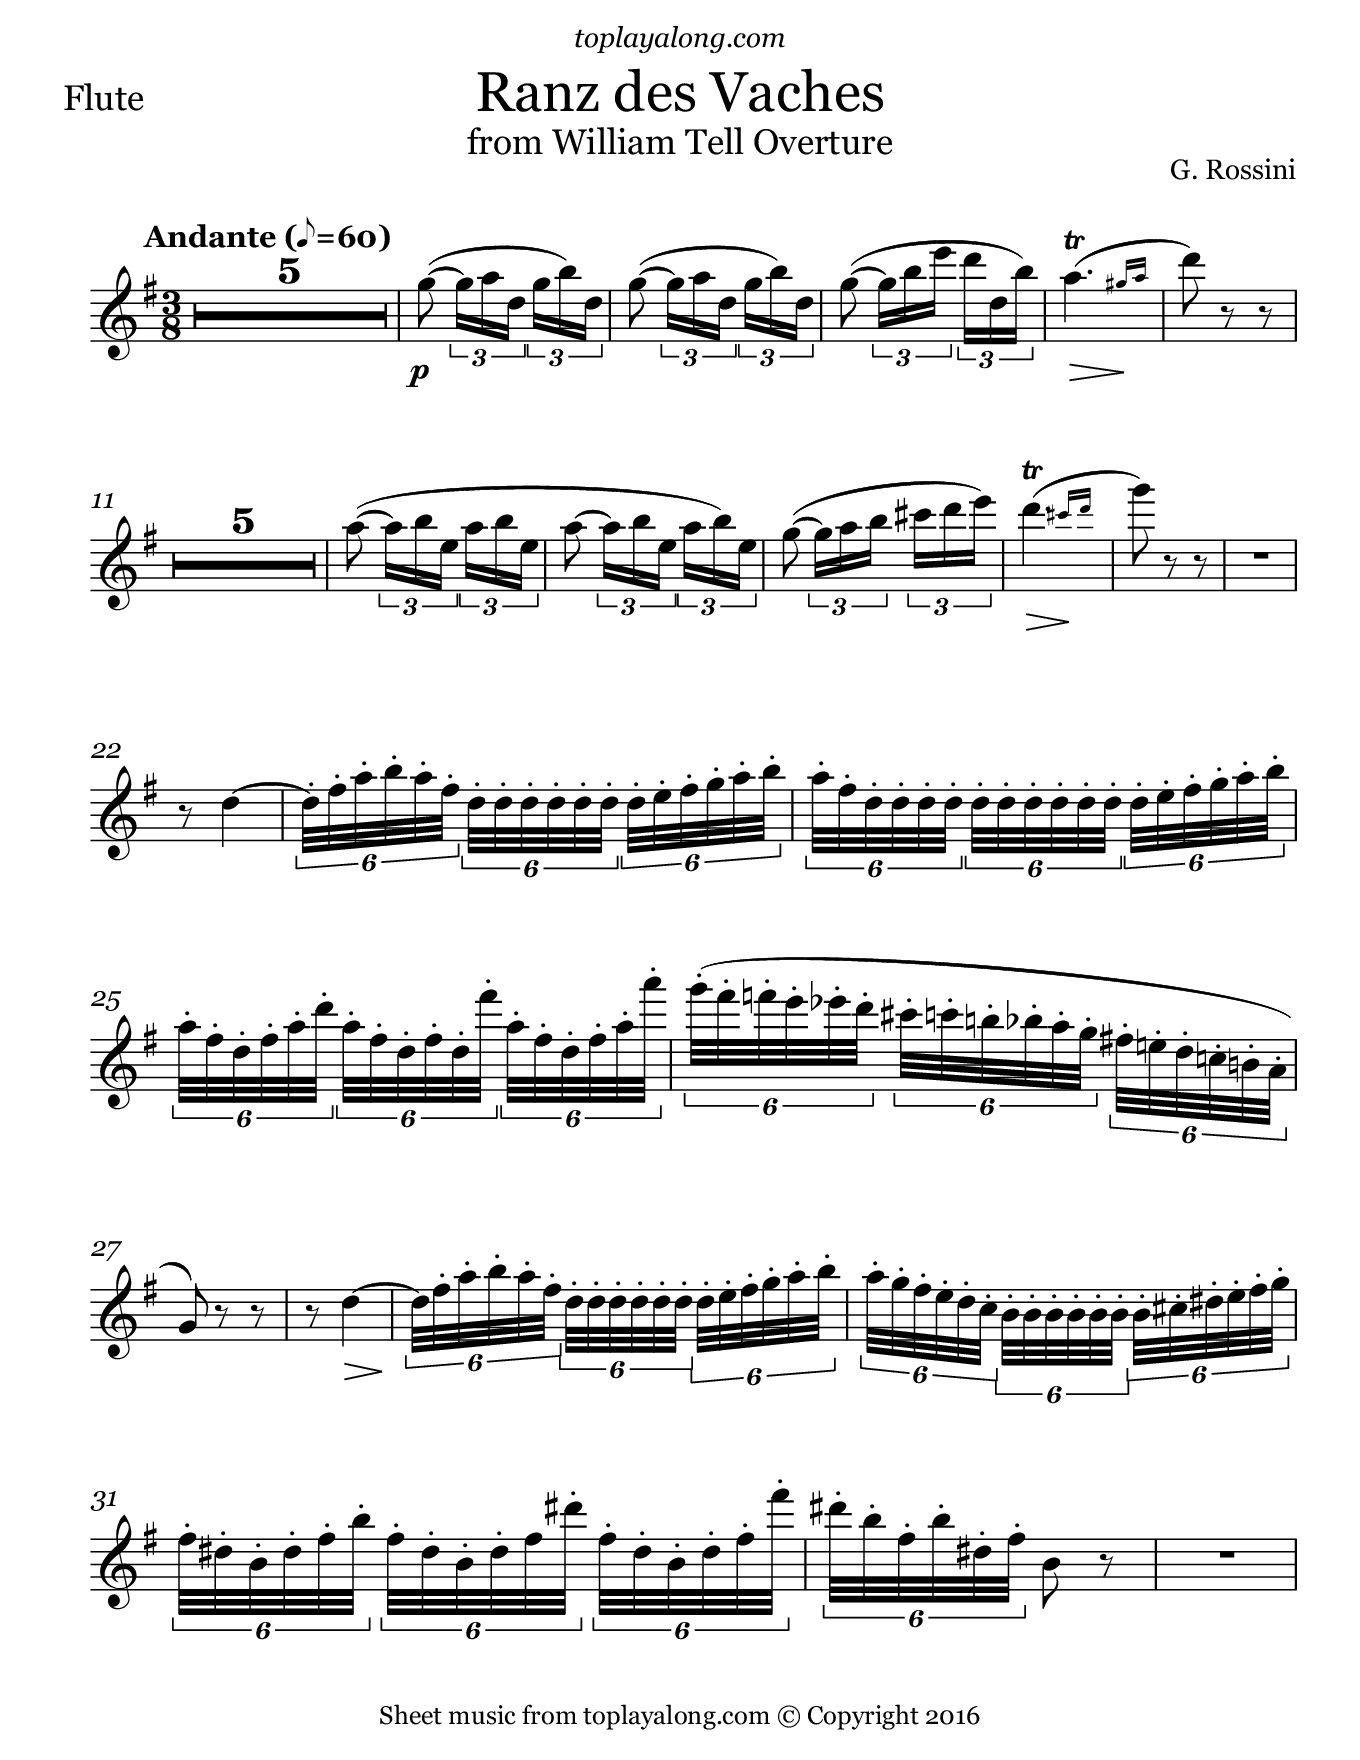 Ranz des Vaches from William Tell Overture by Rossini. Sheet music for Flute, page 1.